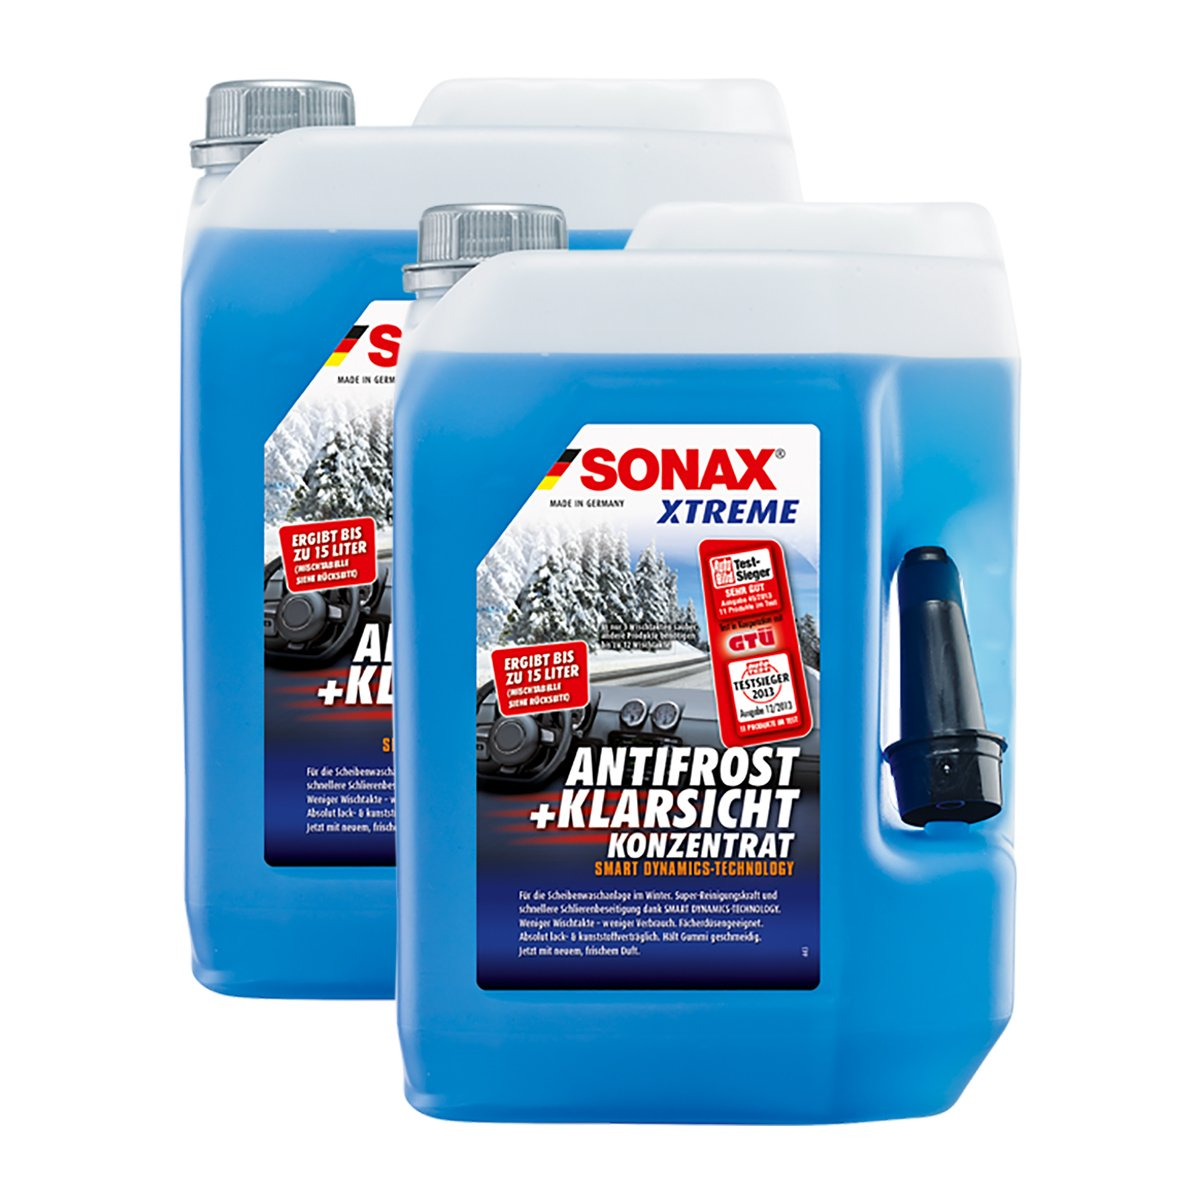 SONAX 2 x 02325050 Xtreme Anti Frost + concentré Transparente Disques Protection antigel 5 l